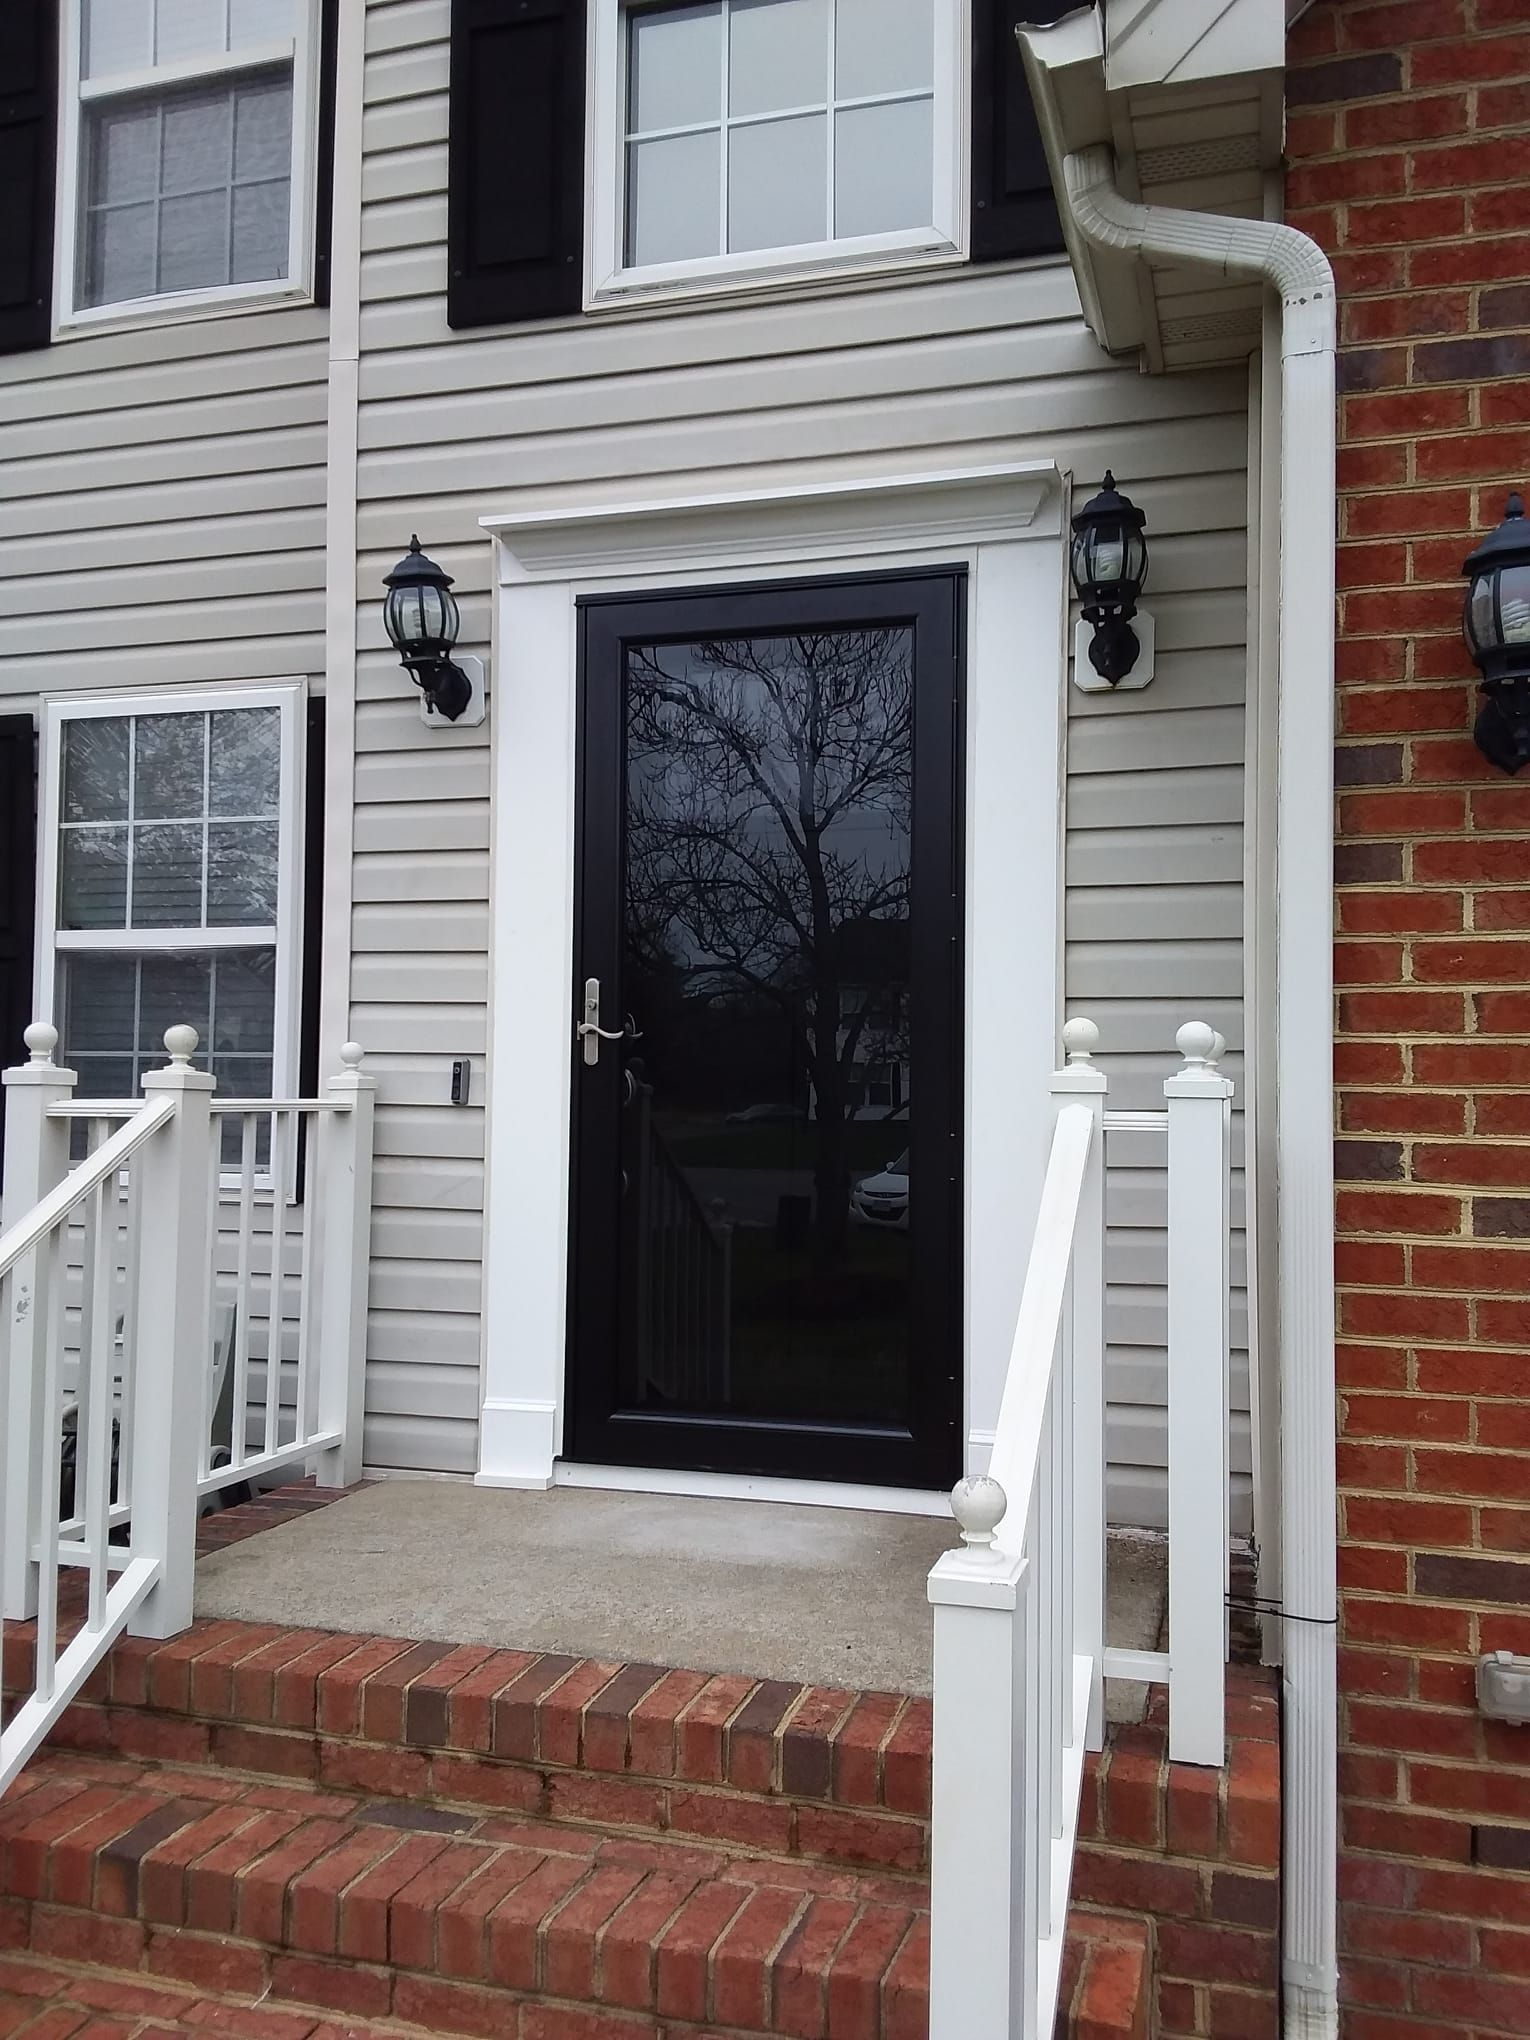 This customer wanted the glass in their storm door to be